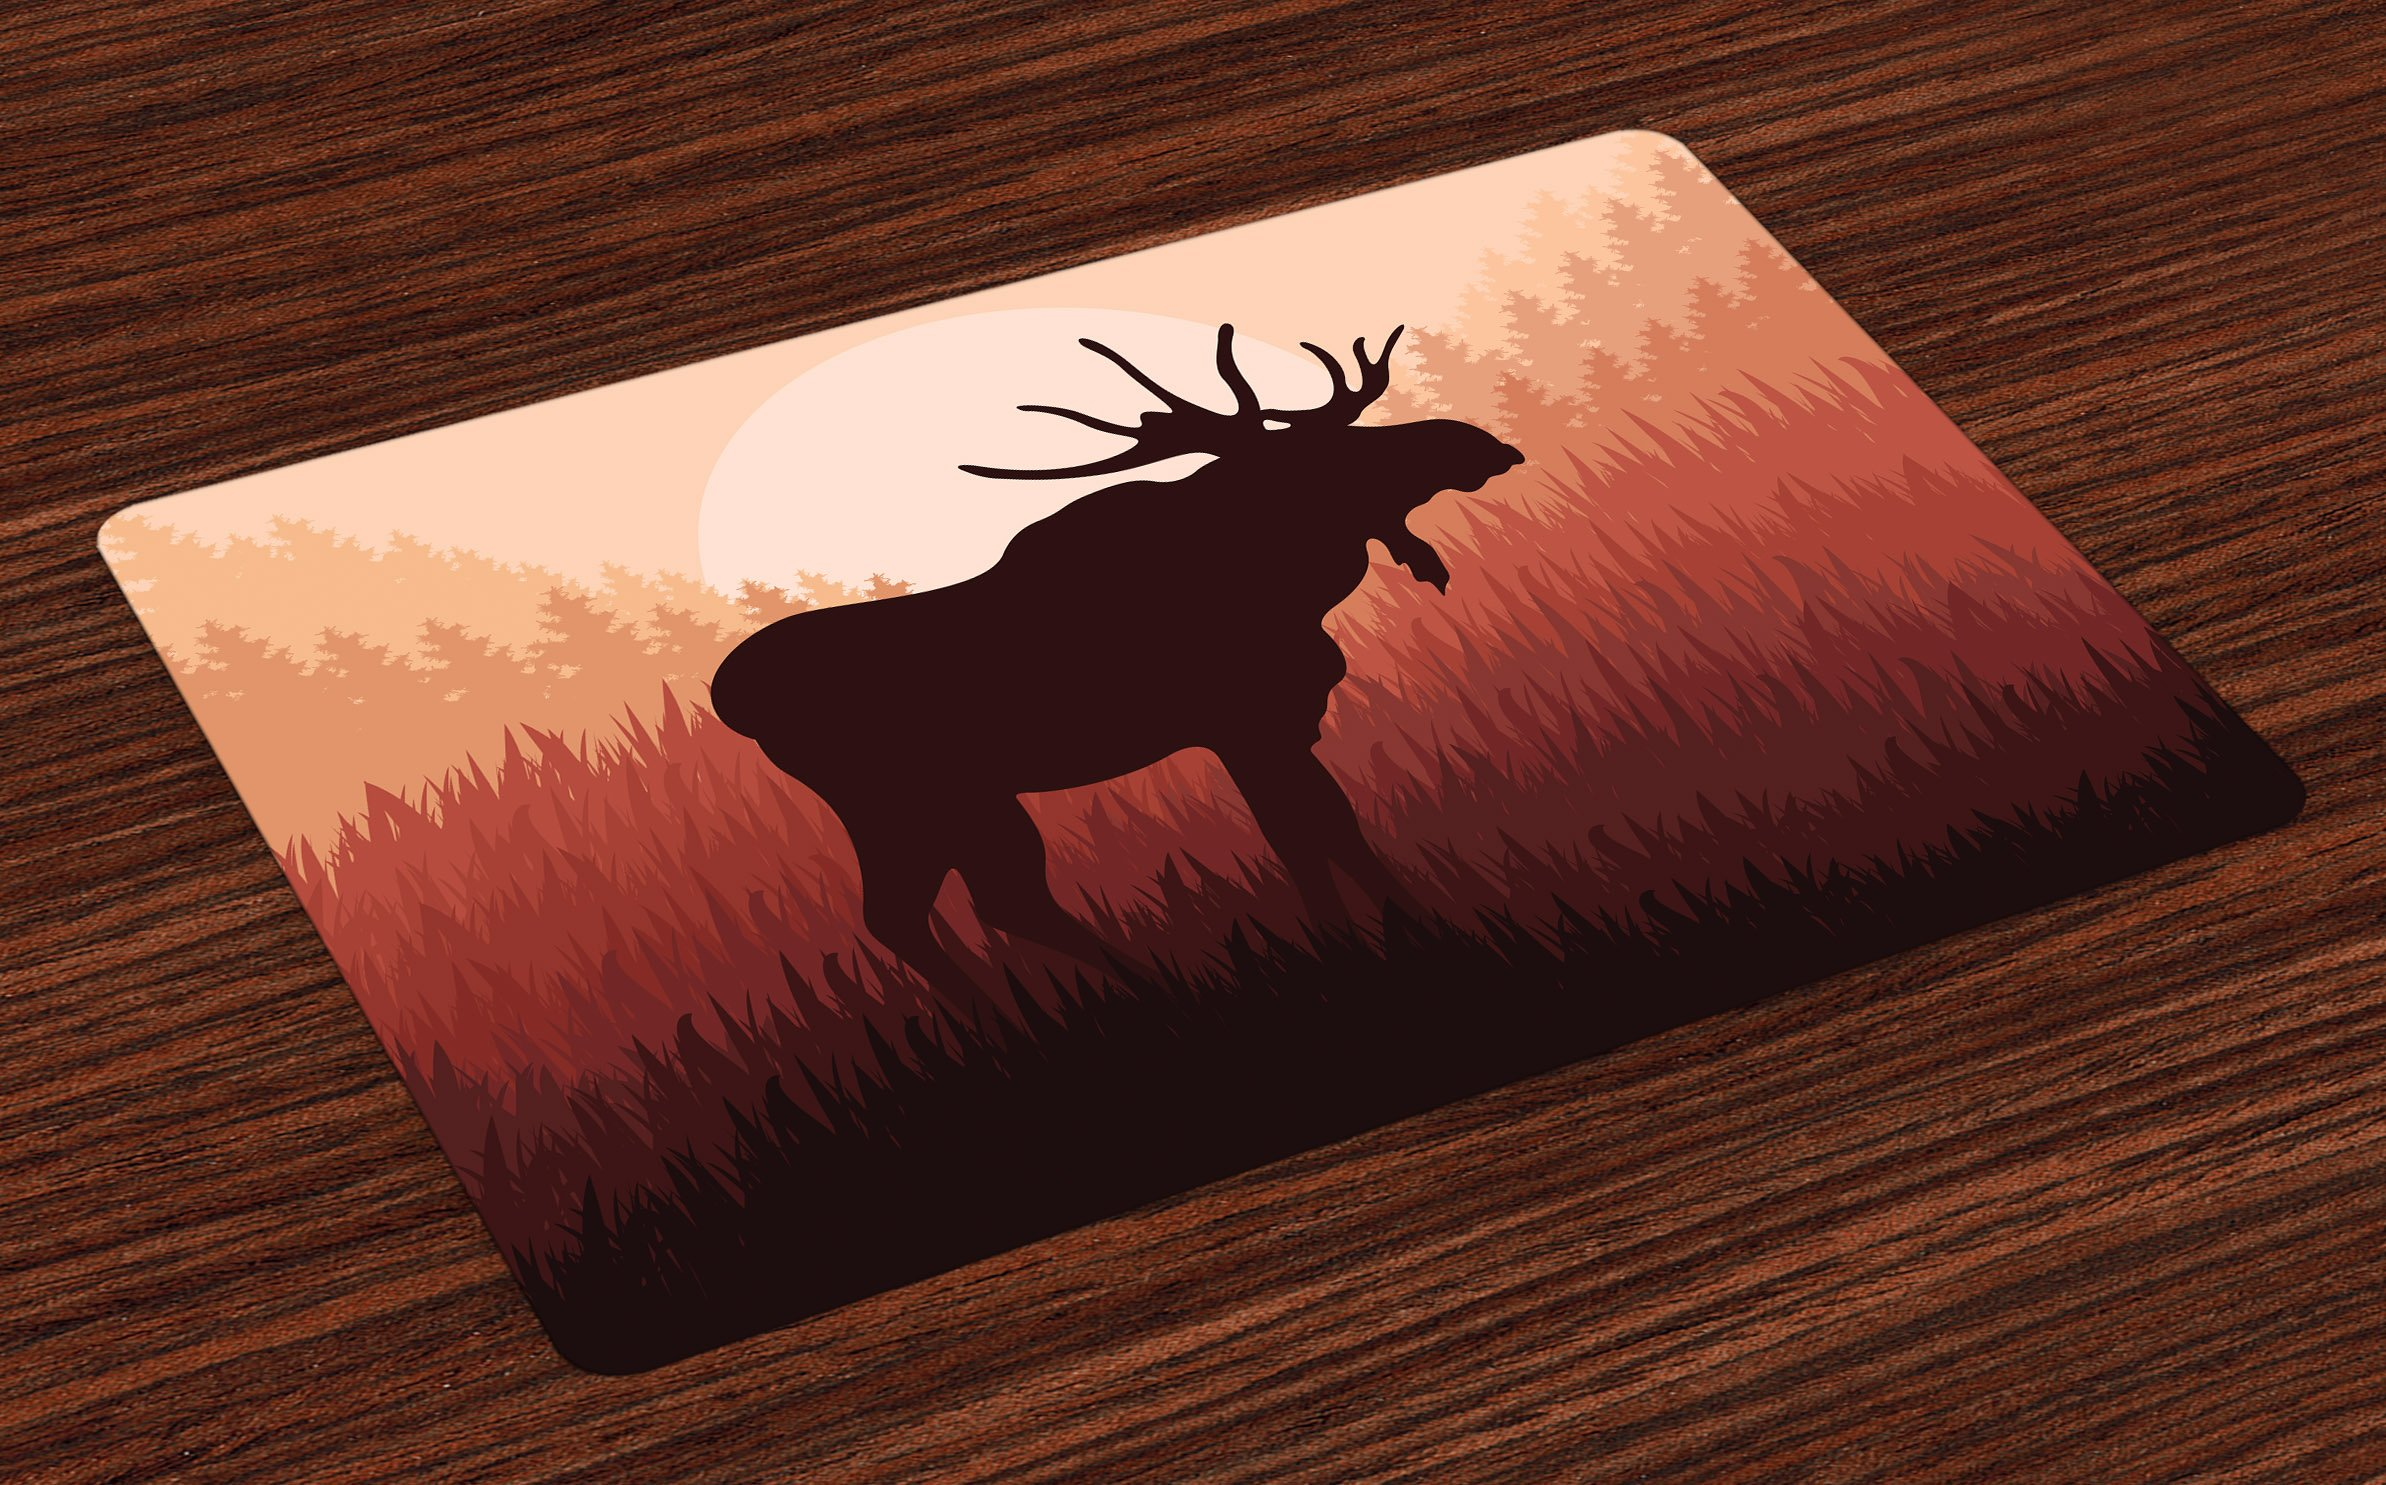 Ambesonne Moose Place Mats, Antlers in Wild Alaska Forest Rusty Abstract Landscape Design Deer Theme Woods, Washable Fabric Placemats for Dining Room Kitchen Table Decor, Peach and Brown